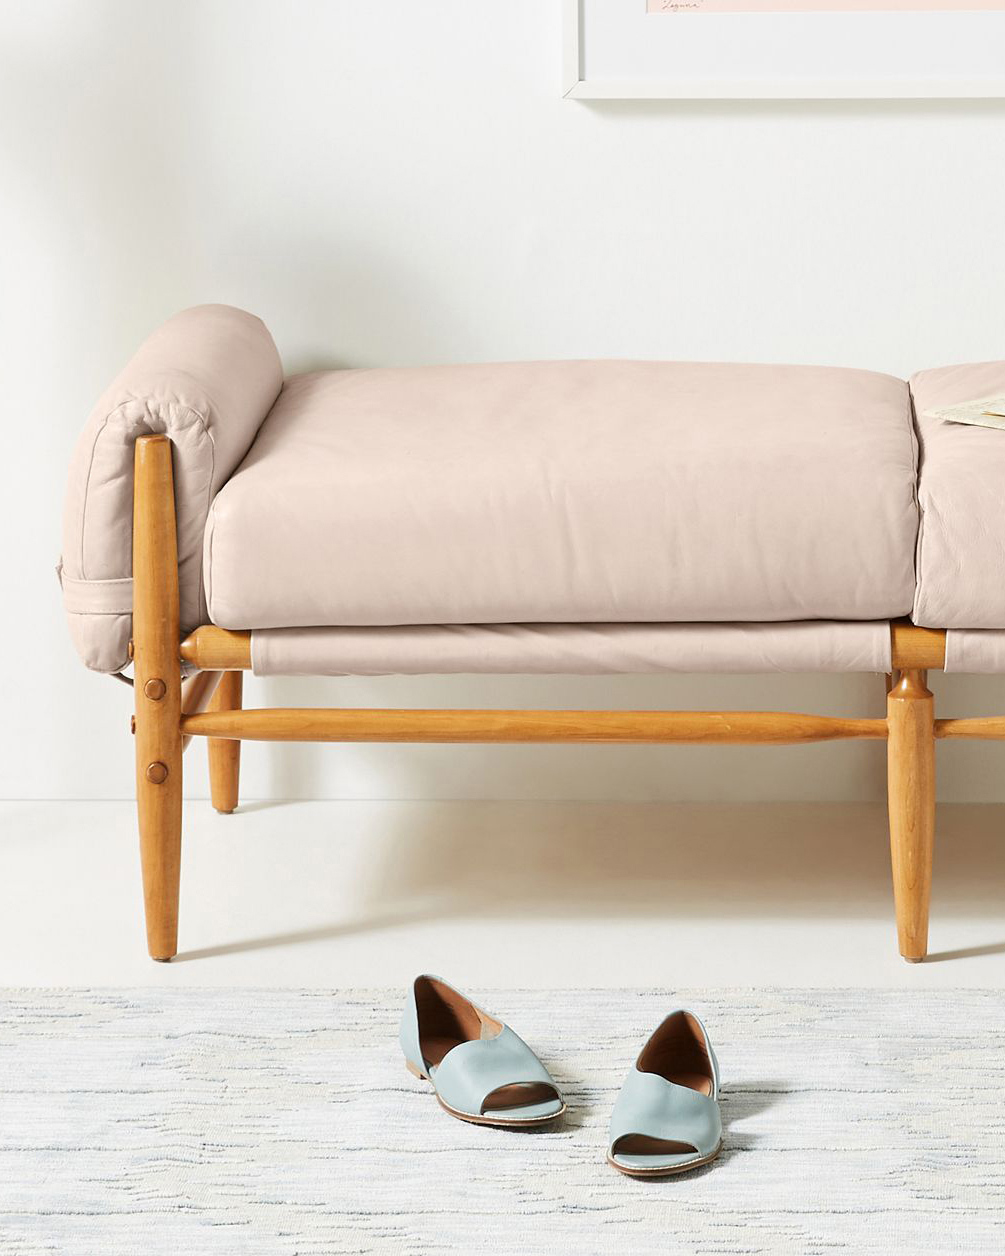 Anthropologie Rhys Bench